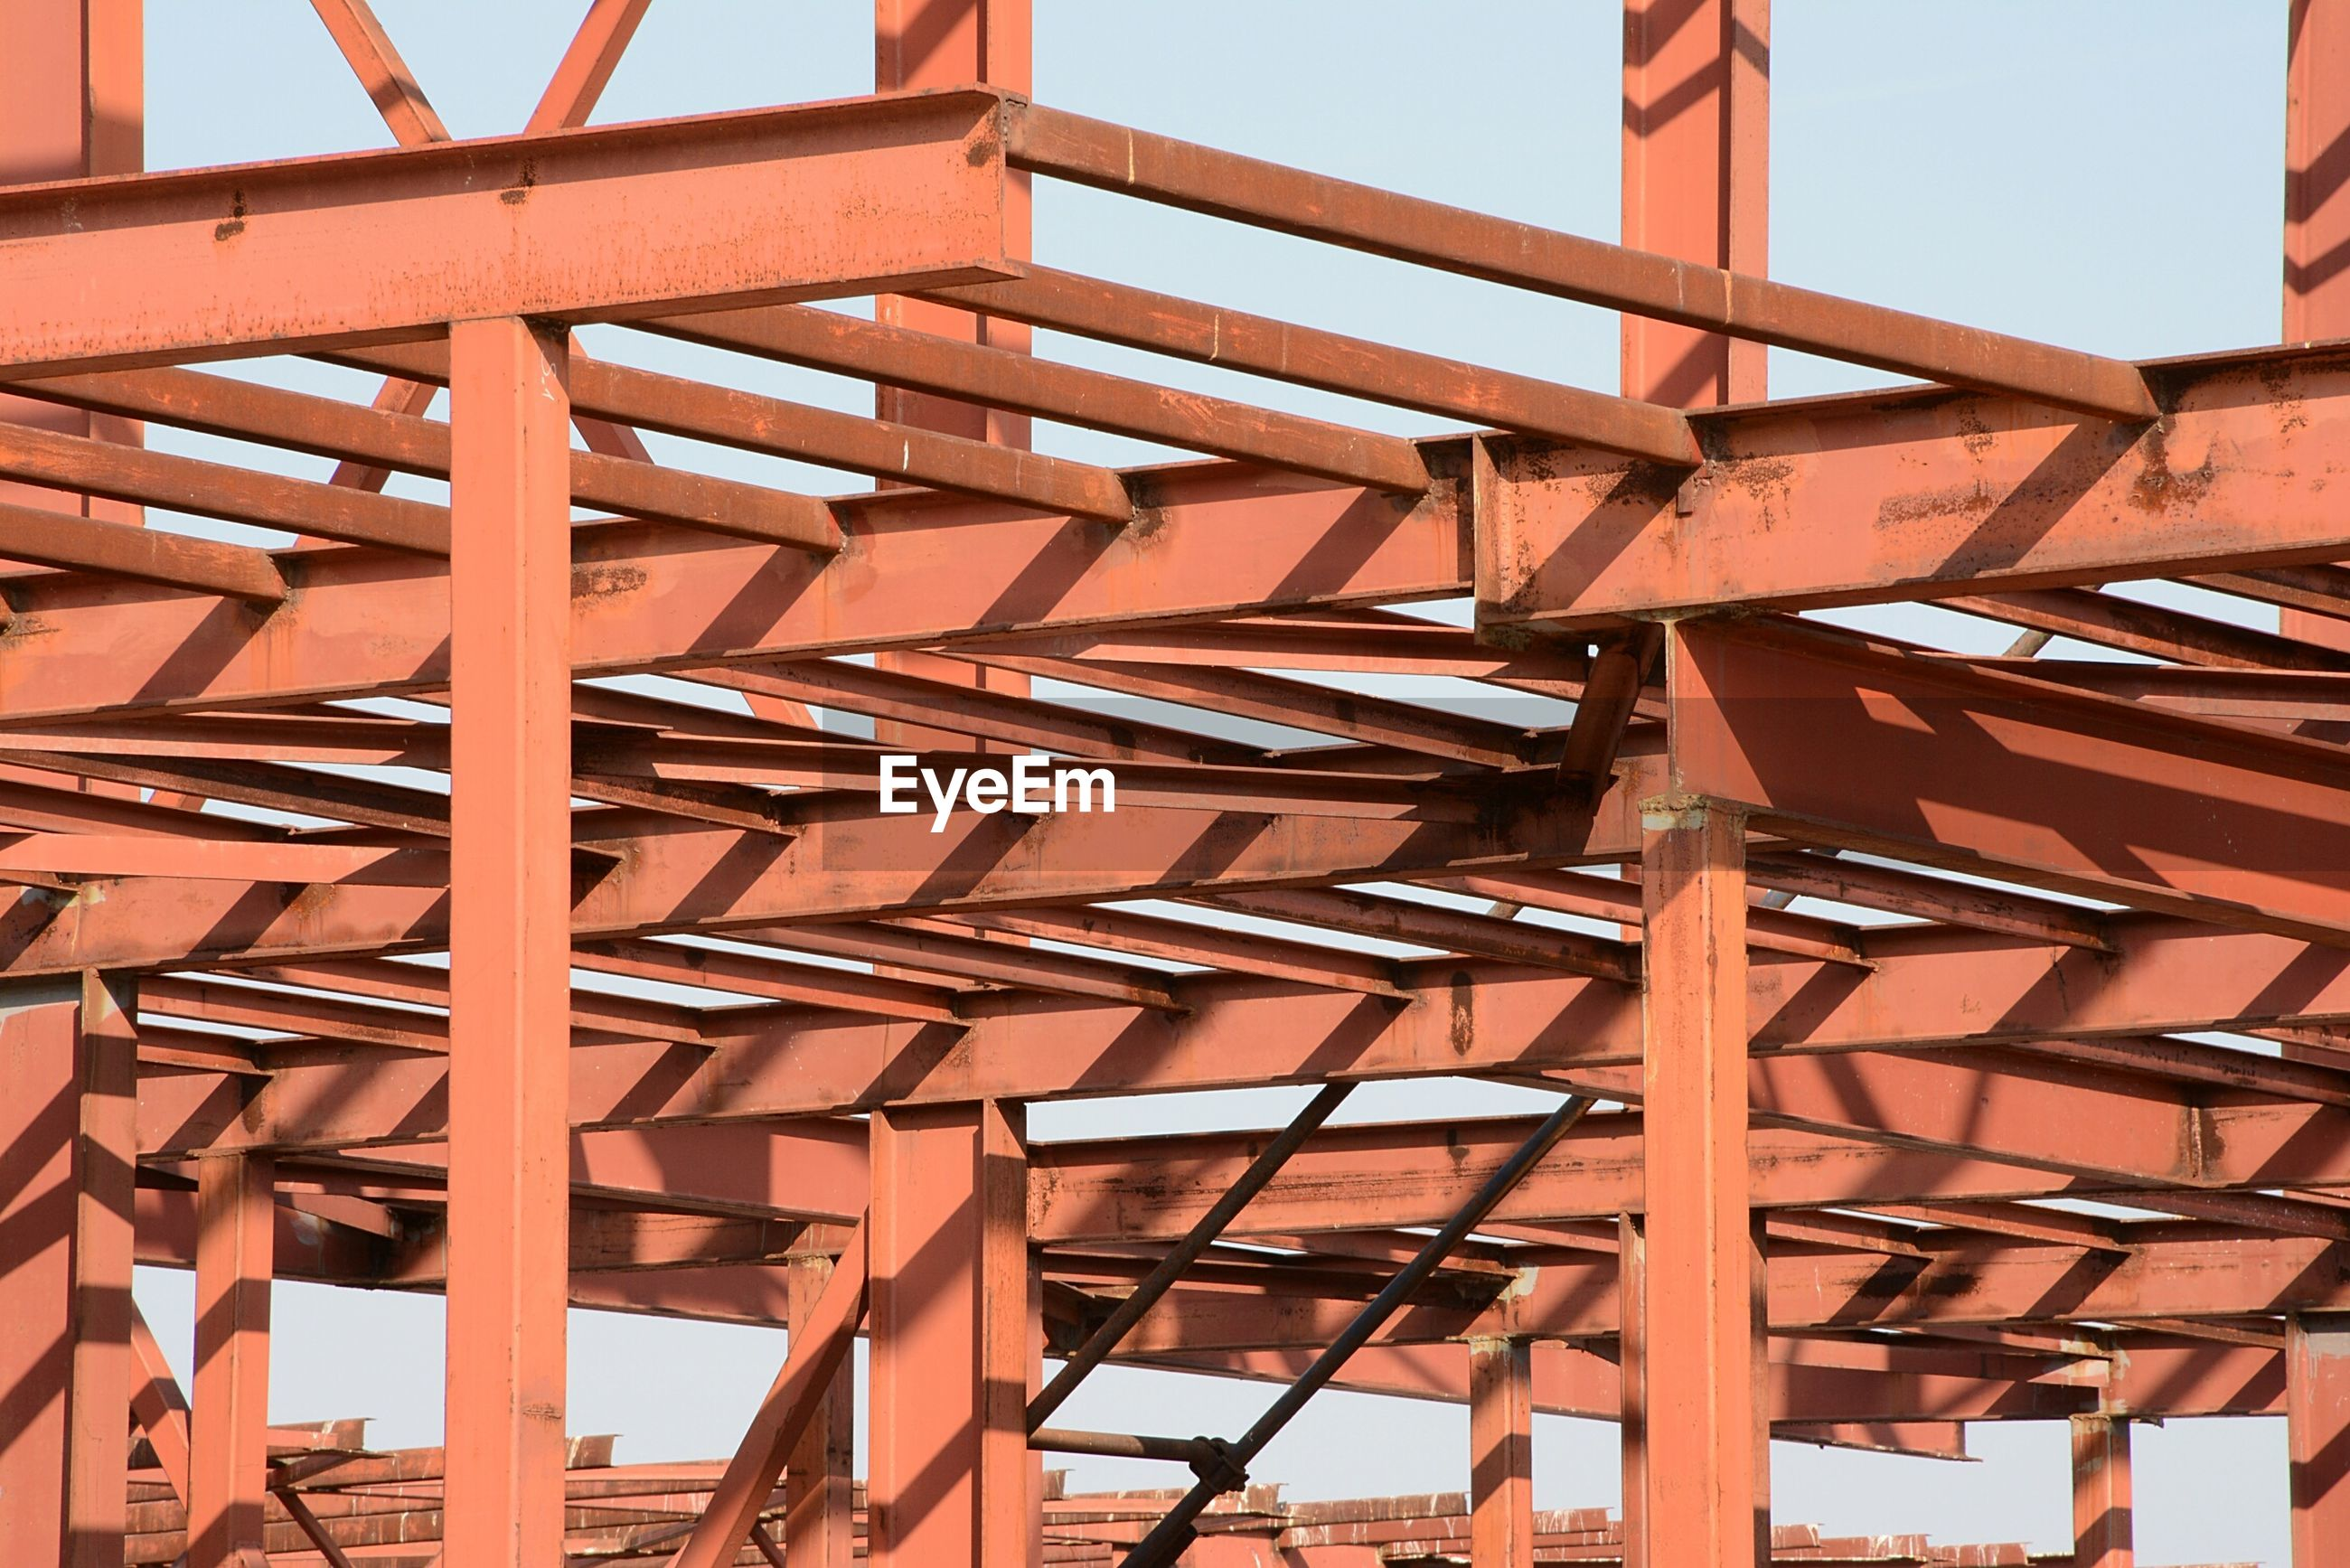 Low angle view of steel structure against sky, steel beams